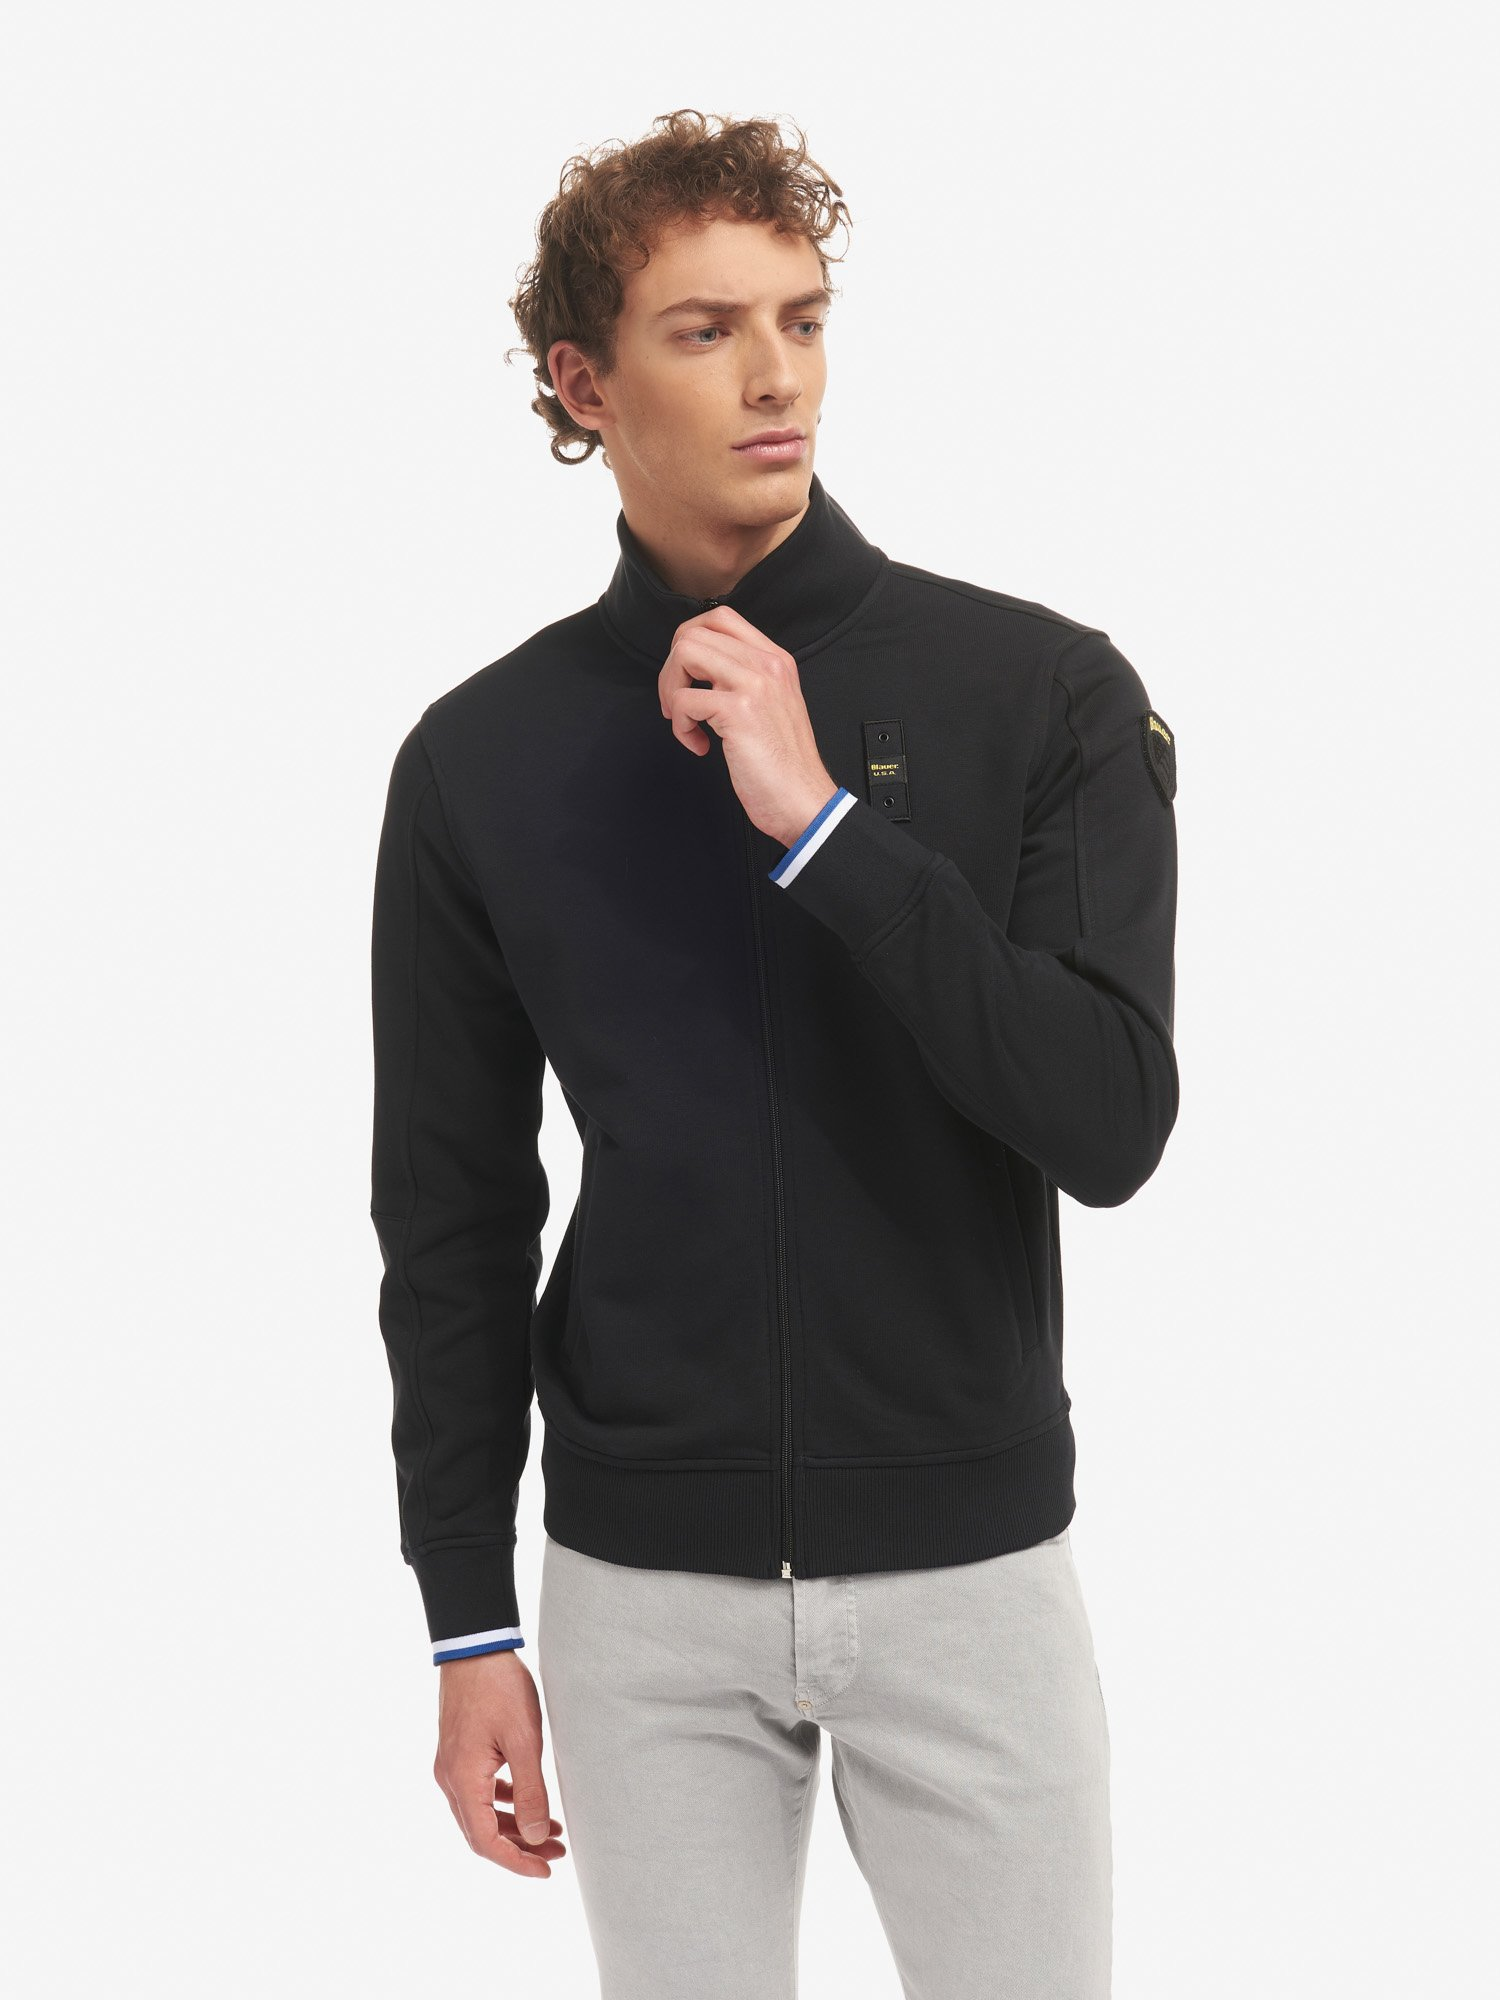 SWEATSHIRT WITH ZIP - Blauer